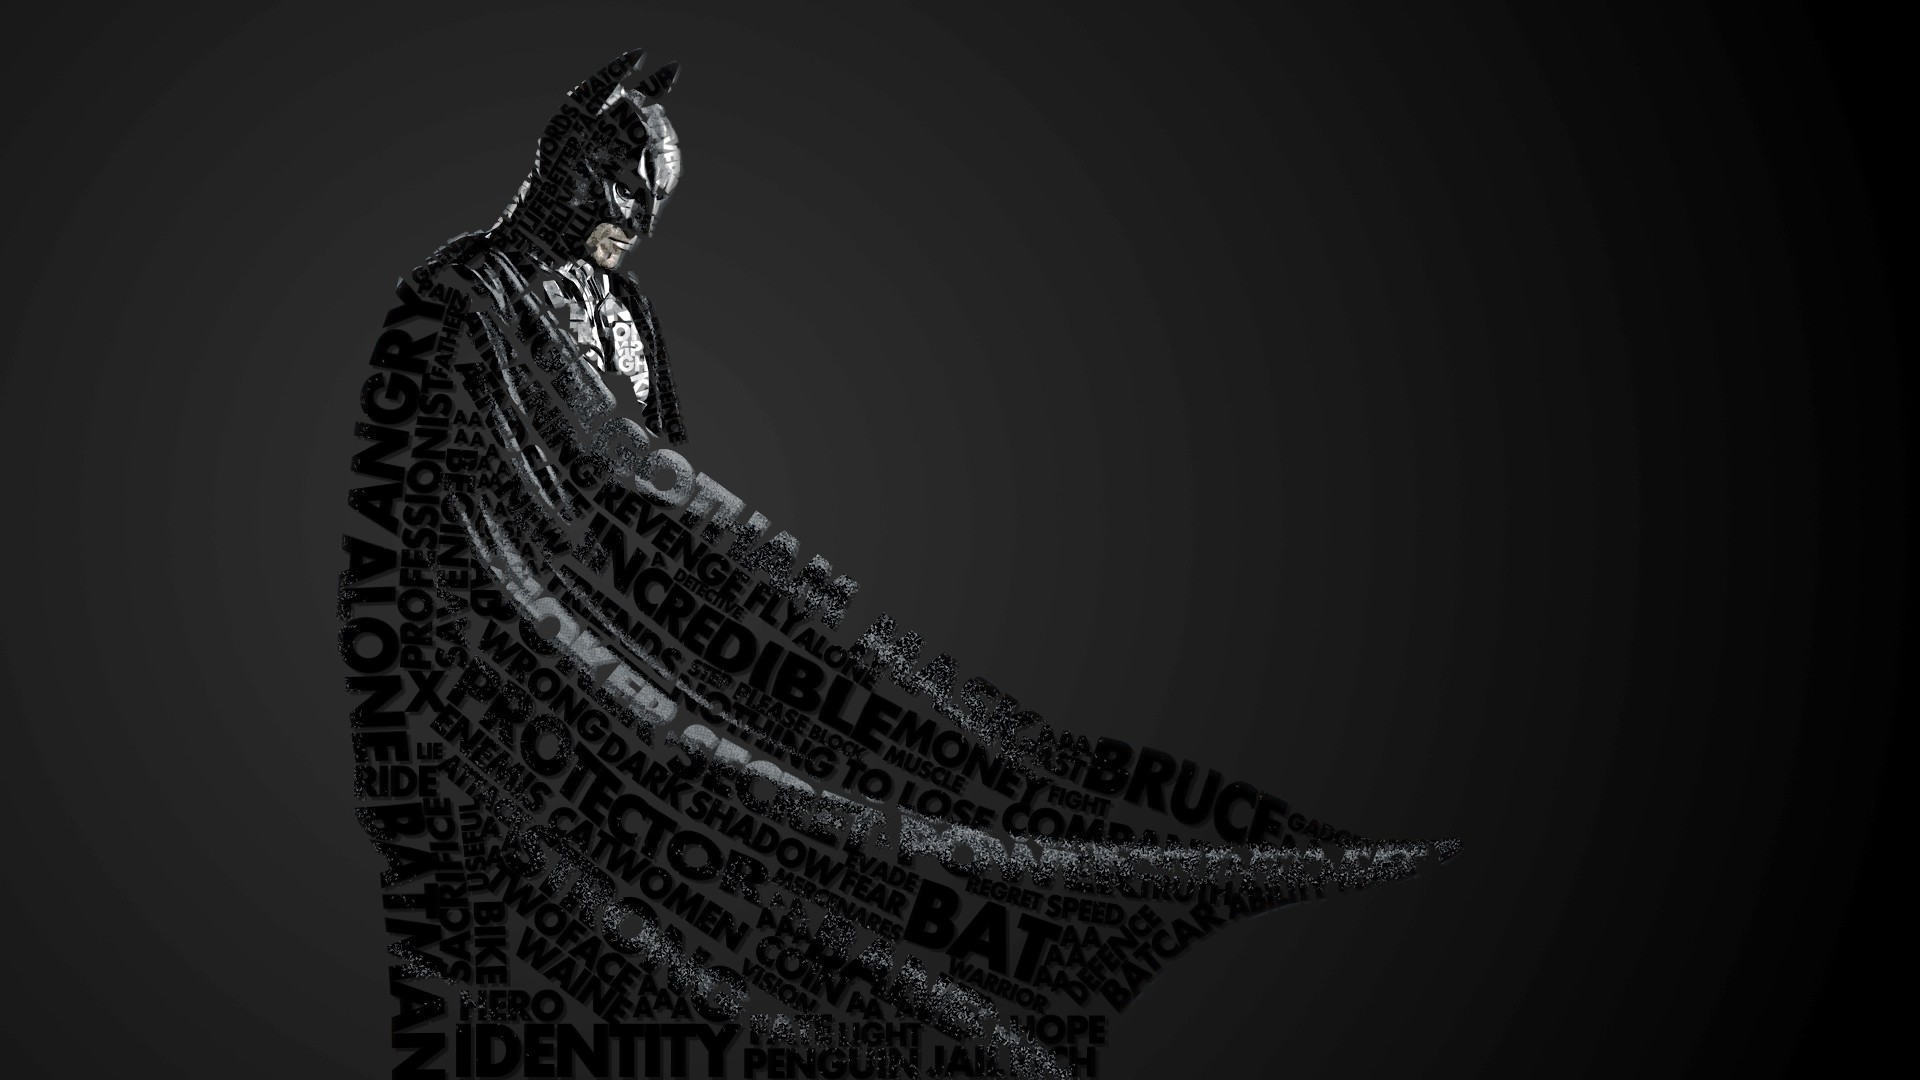 Batman Dark Knight Rises wallpapers 37159 1920x1080 1 on how